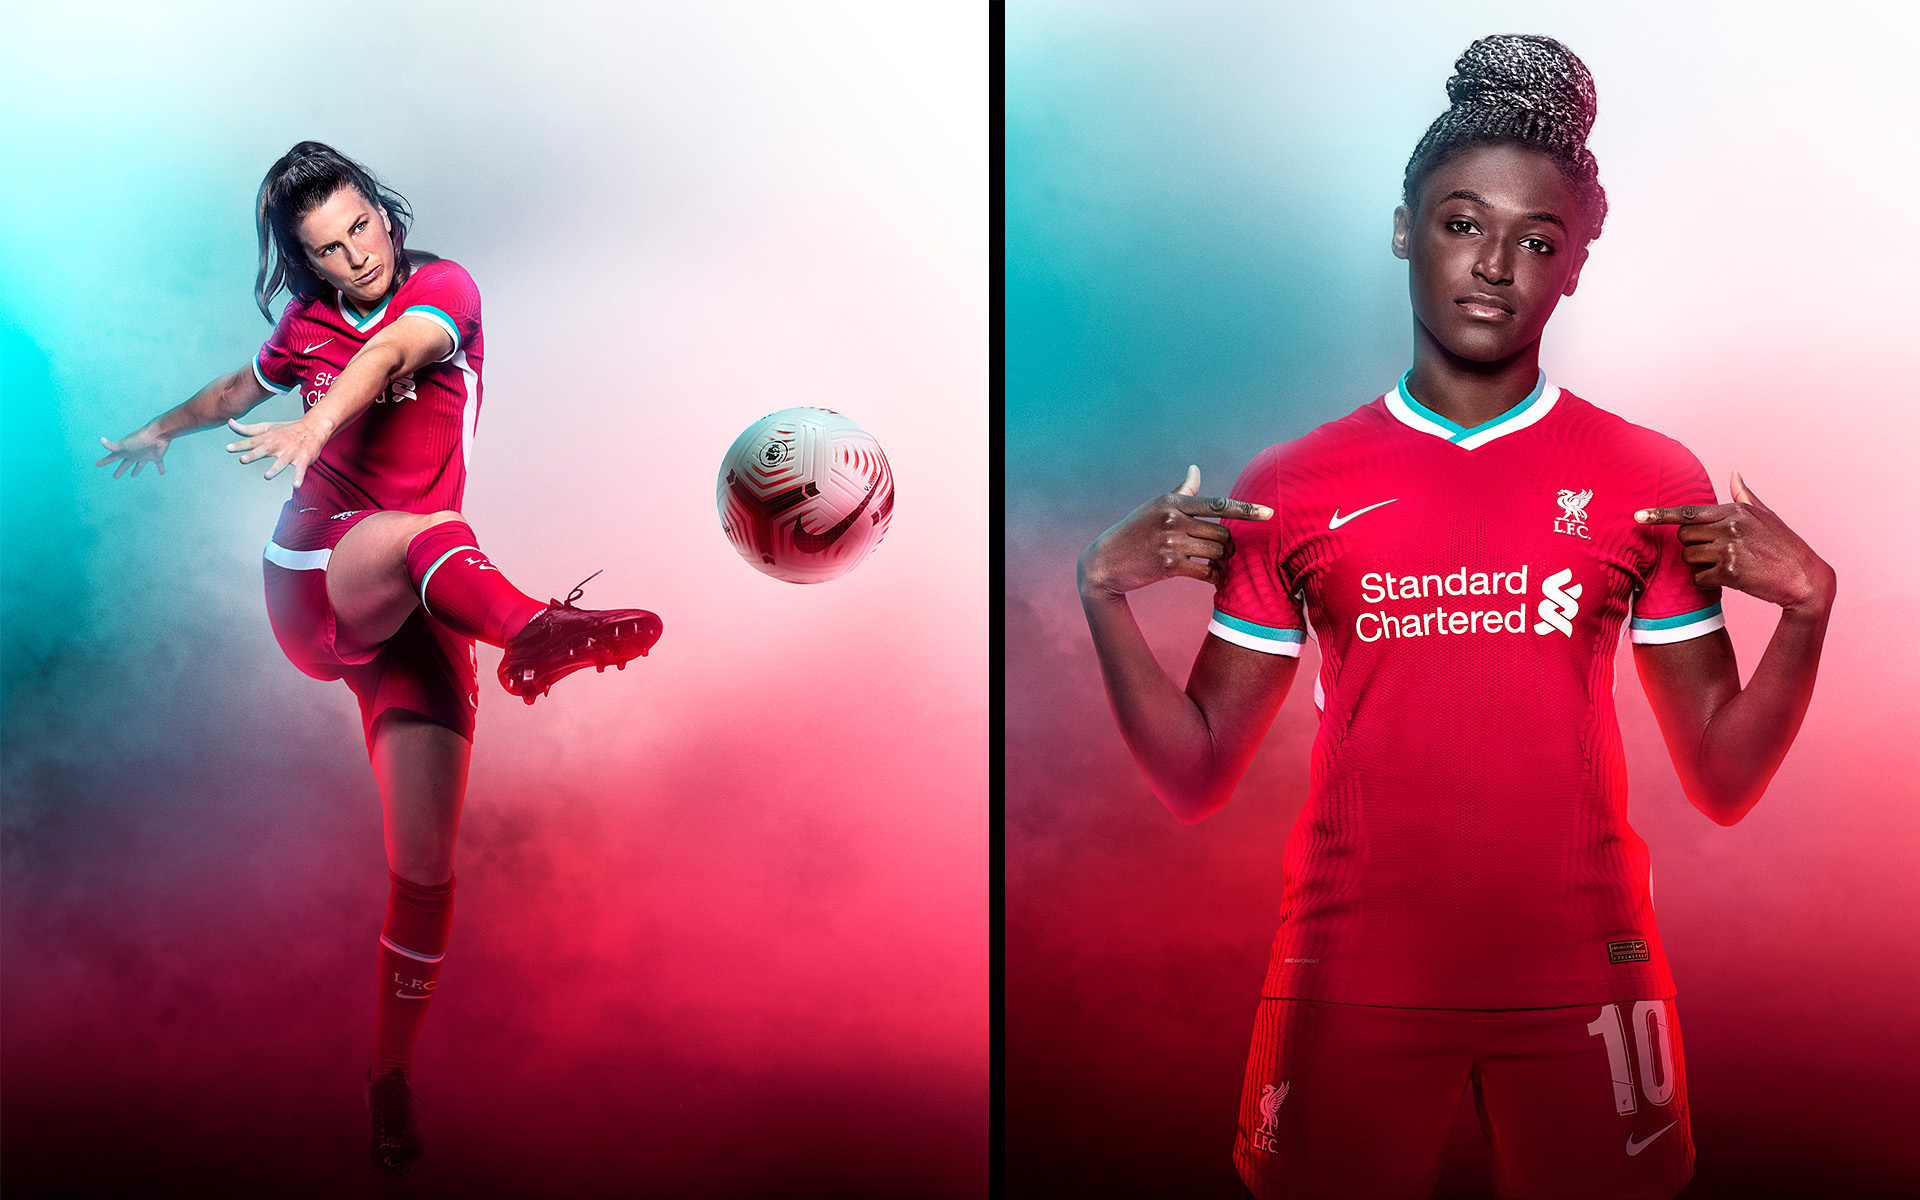 Liverpool FC Womens: Niamh Fahey & Rinsola Babajide Nike Kit 20/21: ©P Cooper